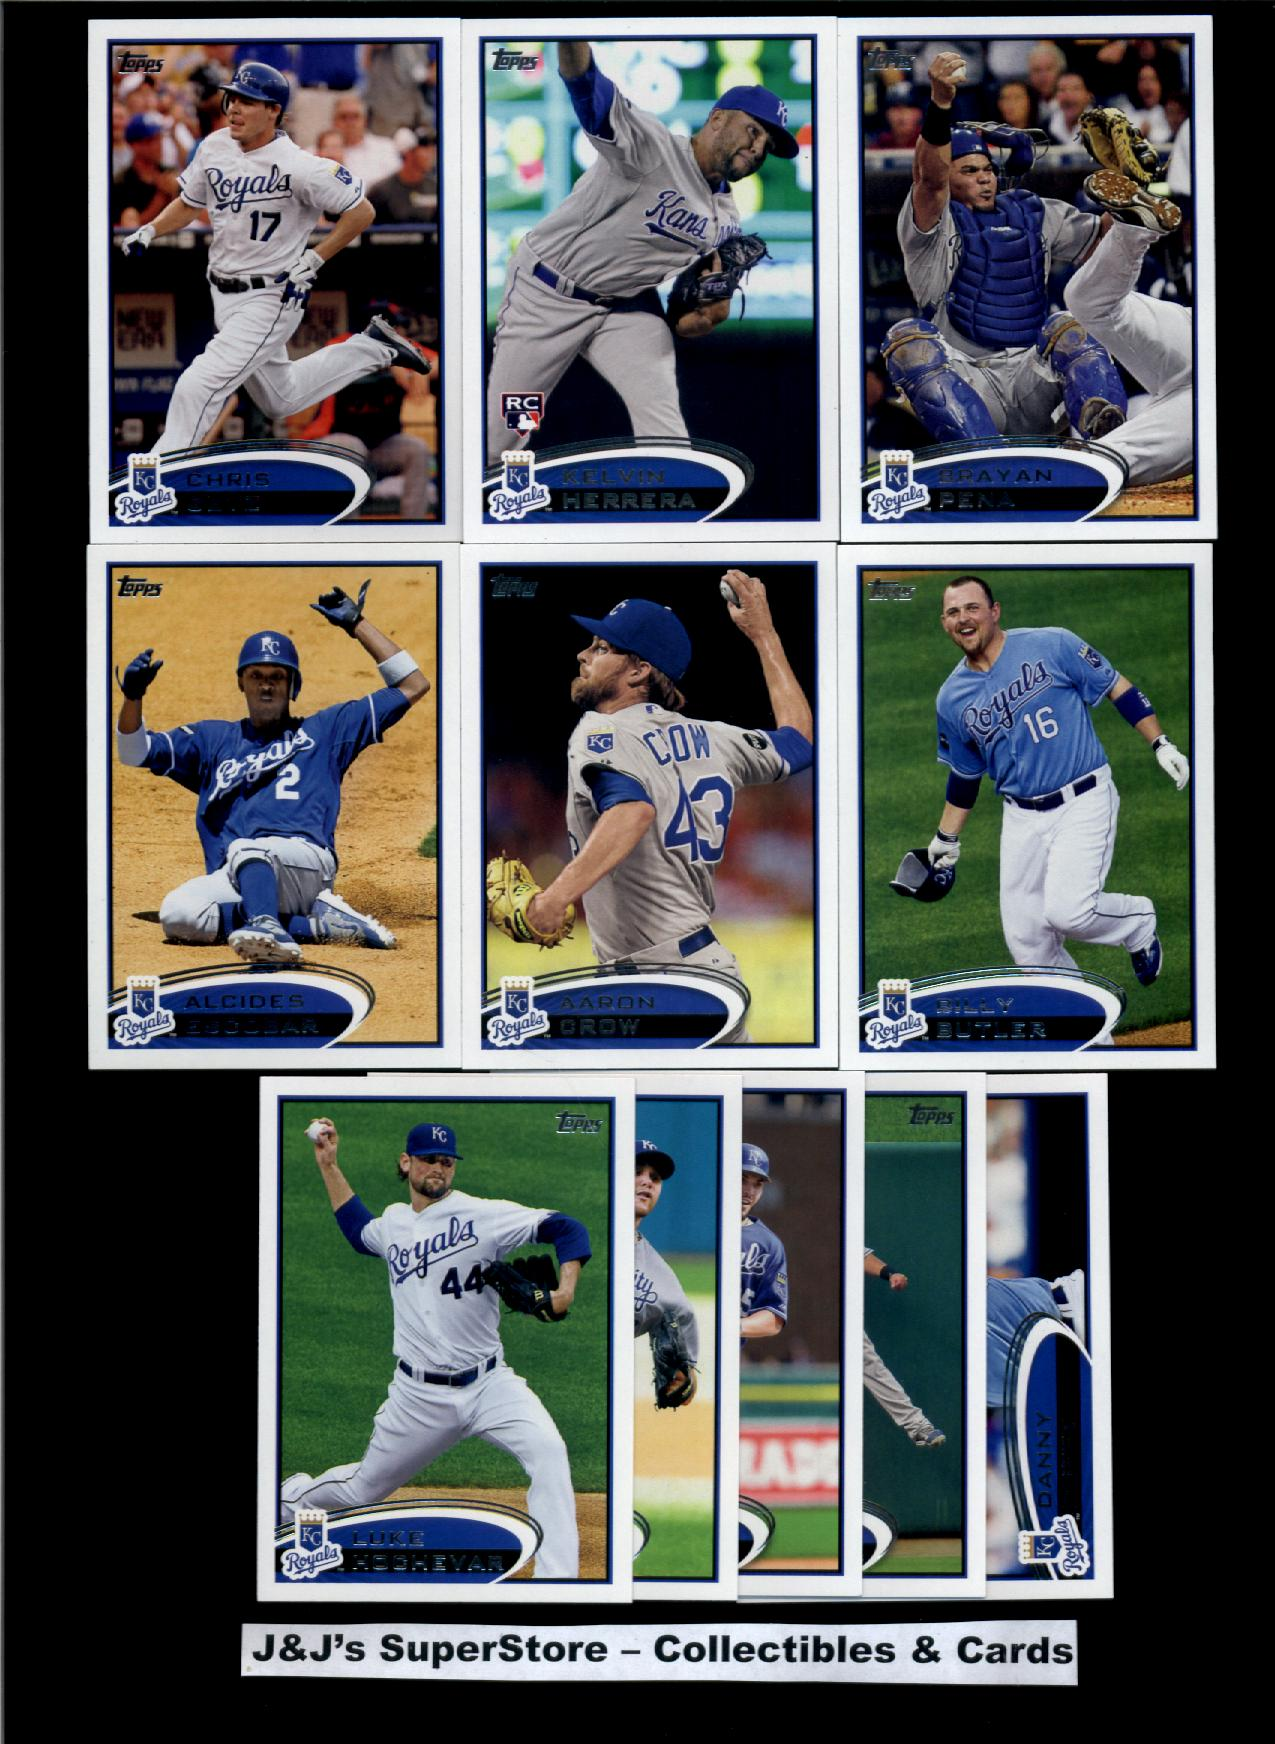 Topps 2012 Topps Kansas City Royals Master Team Set-26 Cards-Eric Hosmer,Mijares,Butler,Broxton,& Betancourt at Sears.com